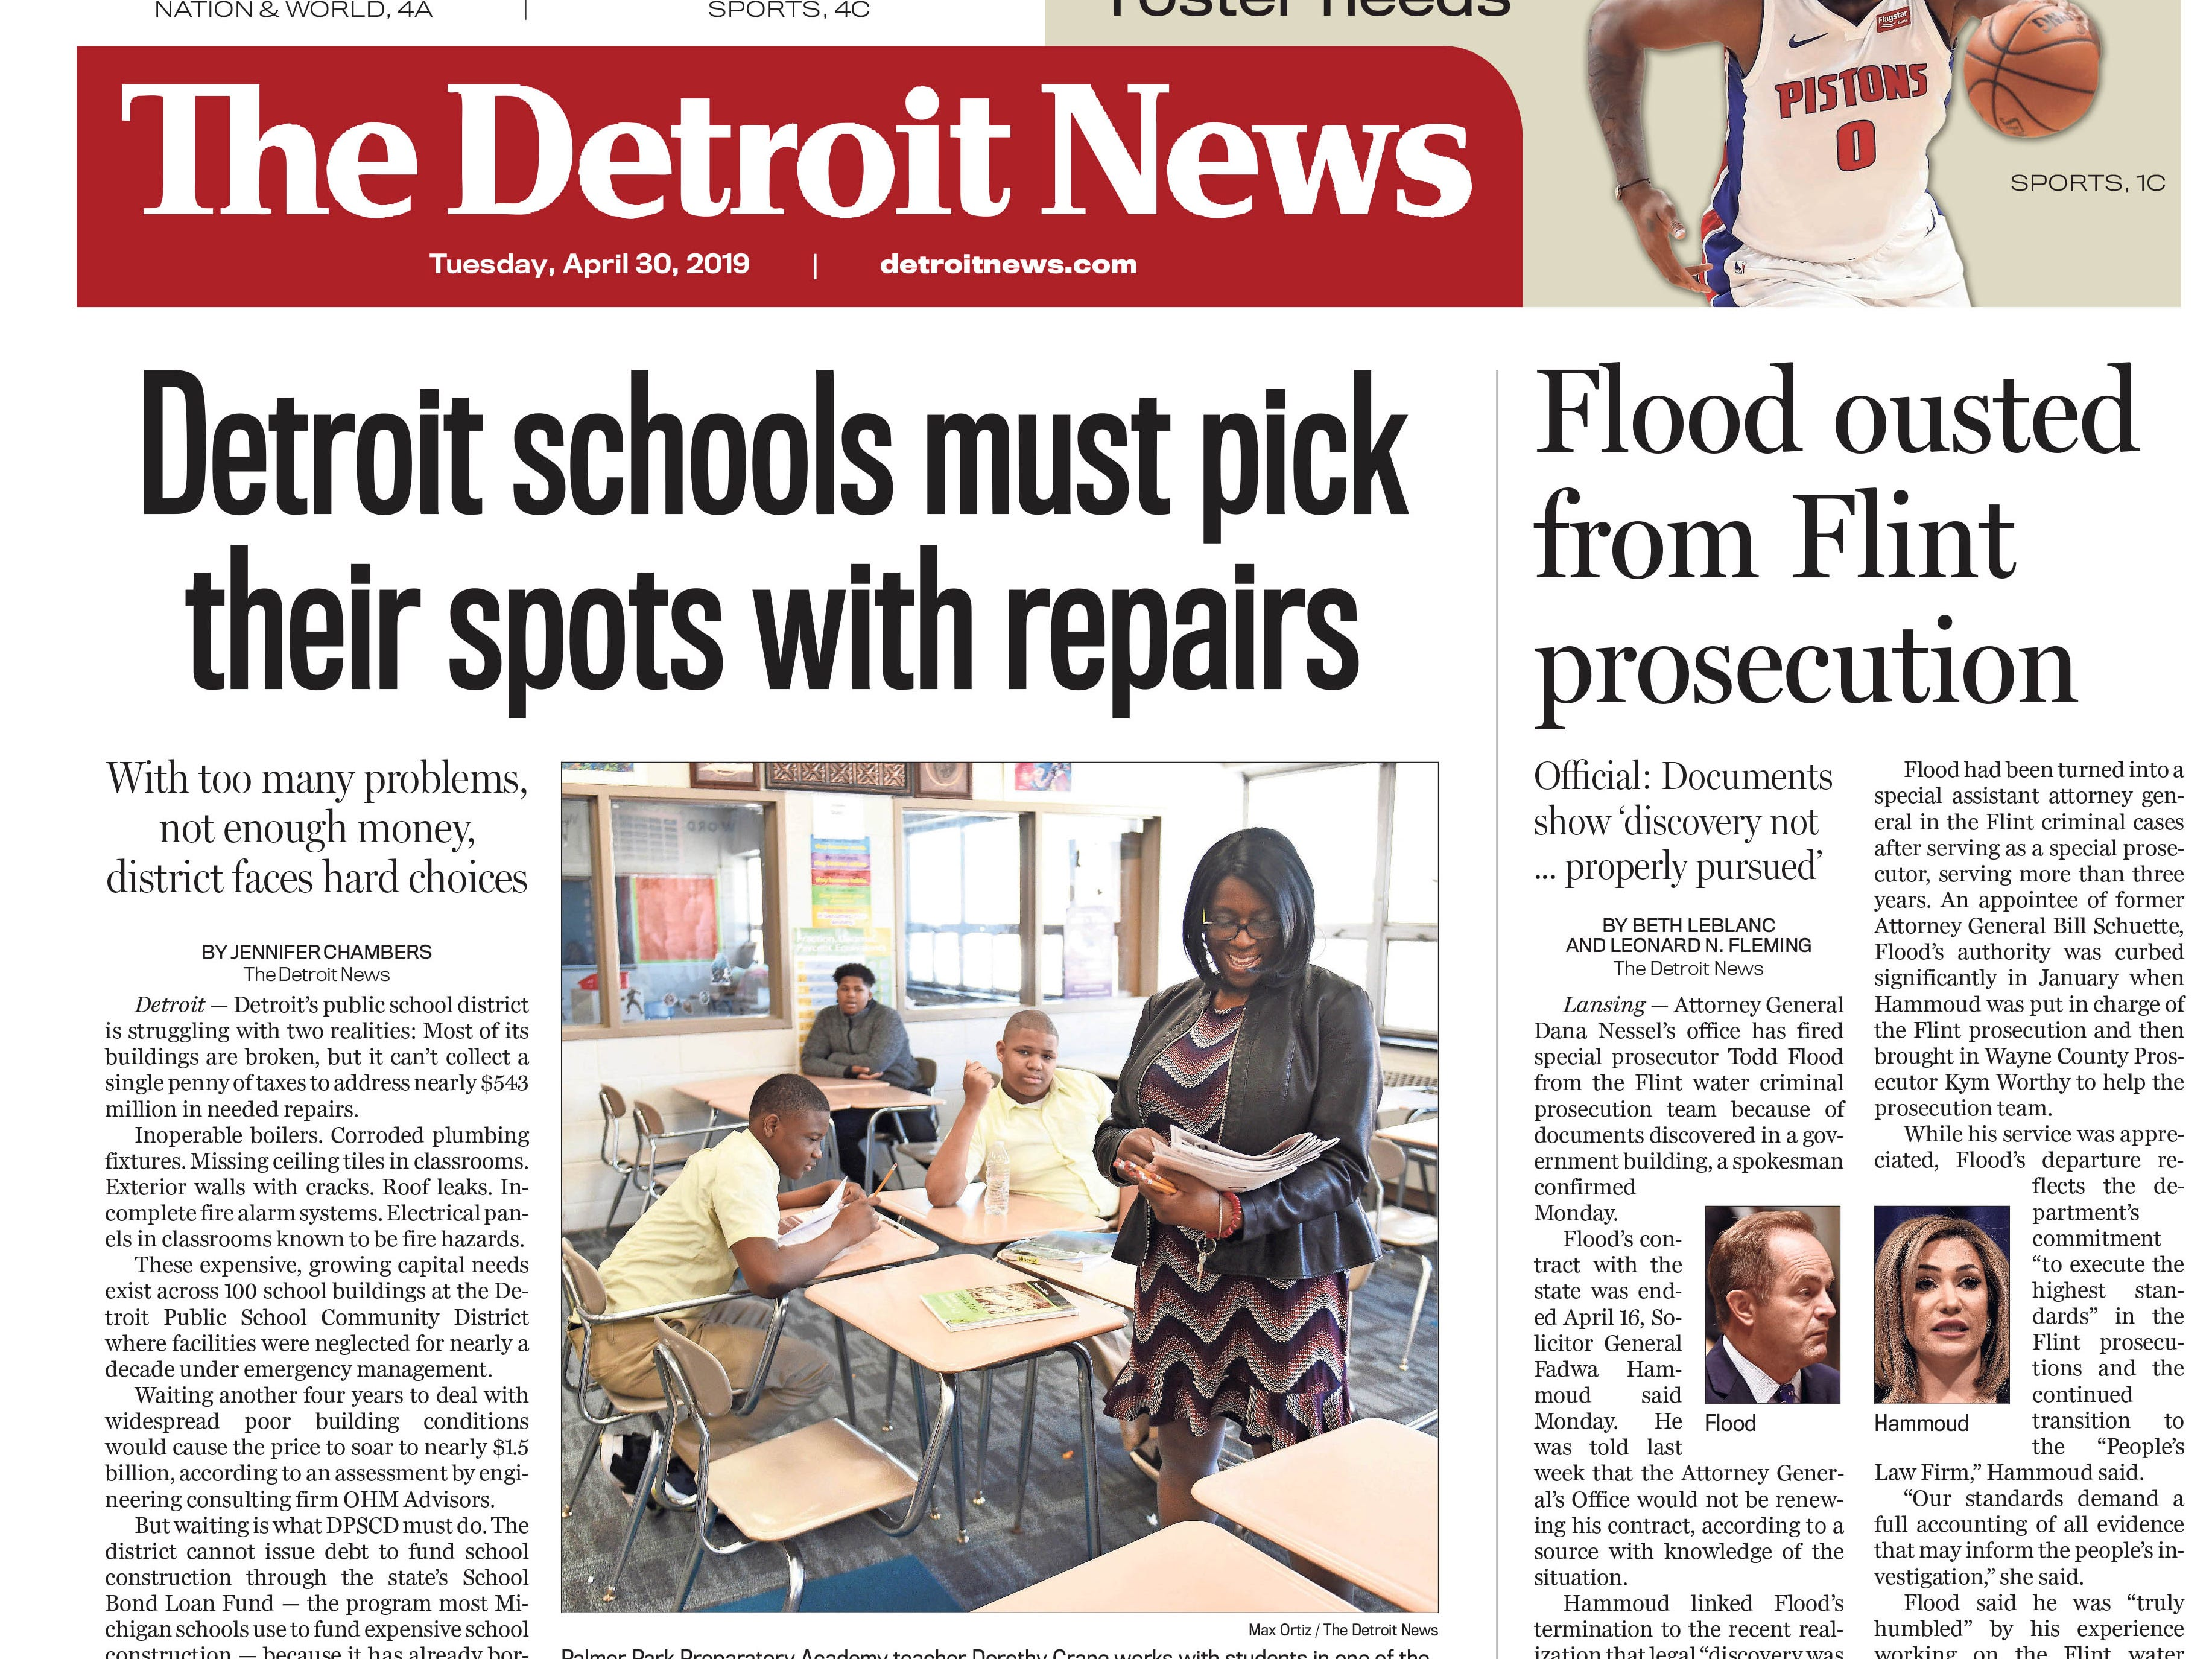 The front page of the Detroit News on Tuesday, April 30, 2019.